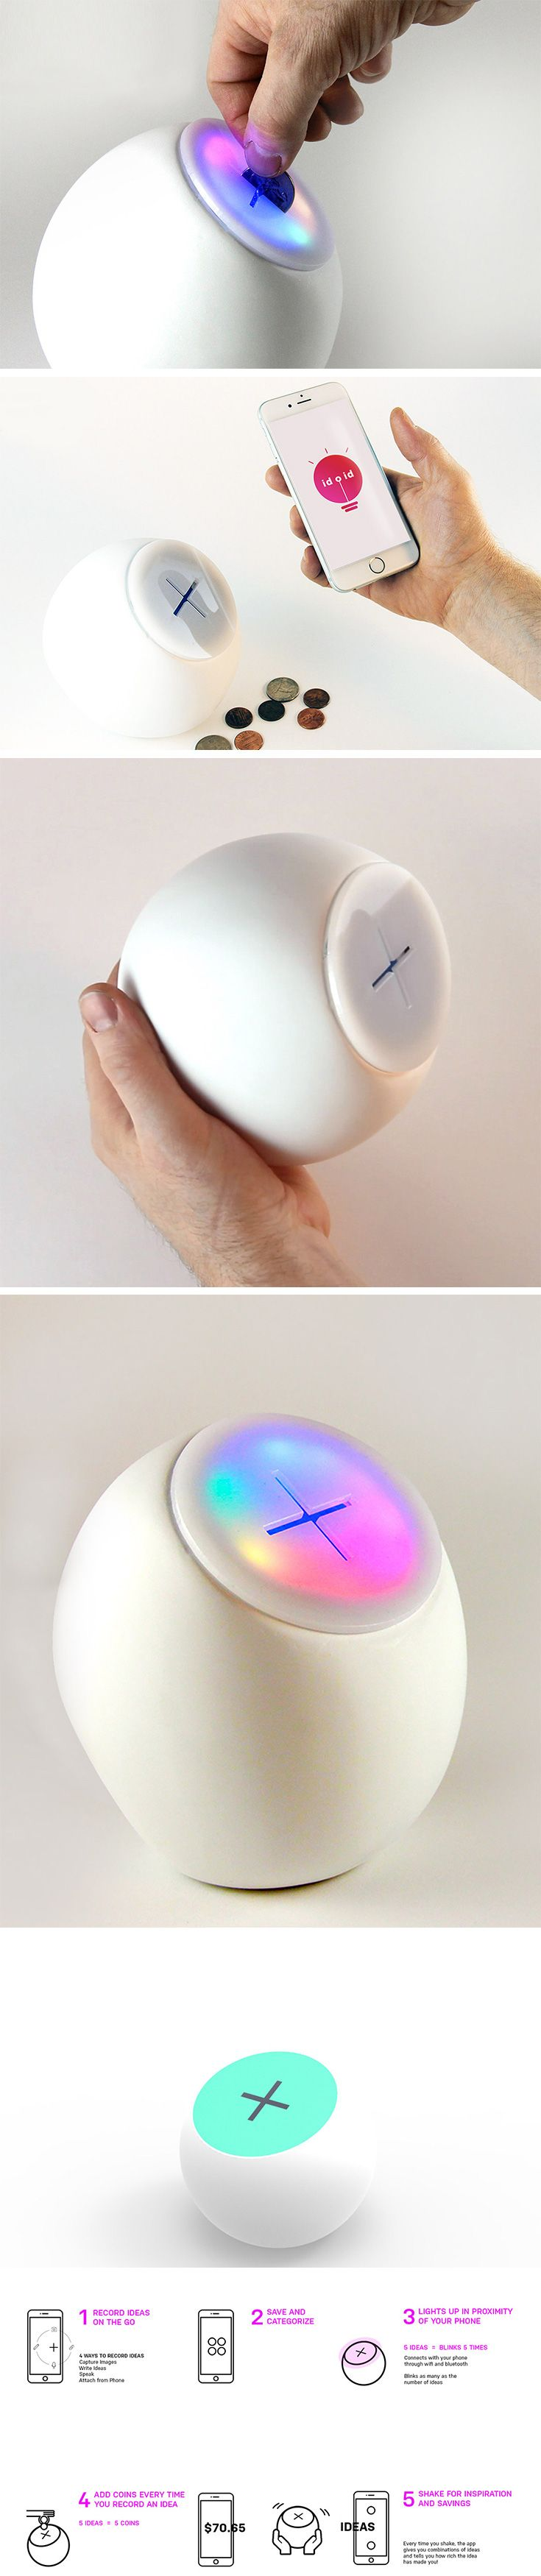 """Inspired by the very idea that we forget ideas IDOID is a method to safe keep your EUREKA moments. This small interactive, fun product looks like a piggy bank, but it's actually an """"idea bank"""". It comes with a companion App called IDOID from which you can record all your brilliant brainwaves, thoughts, inspirations and ideas on the go!"""